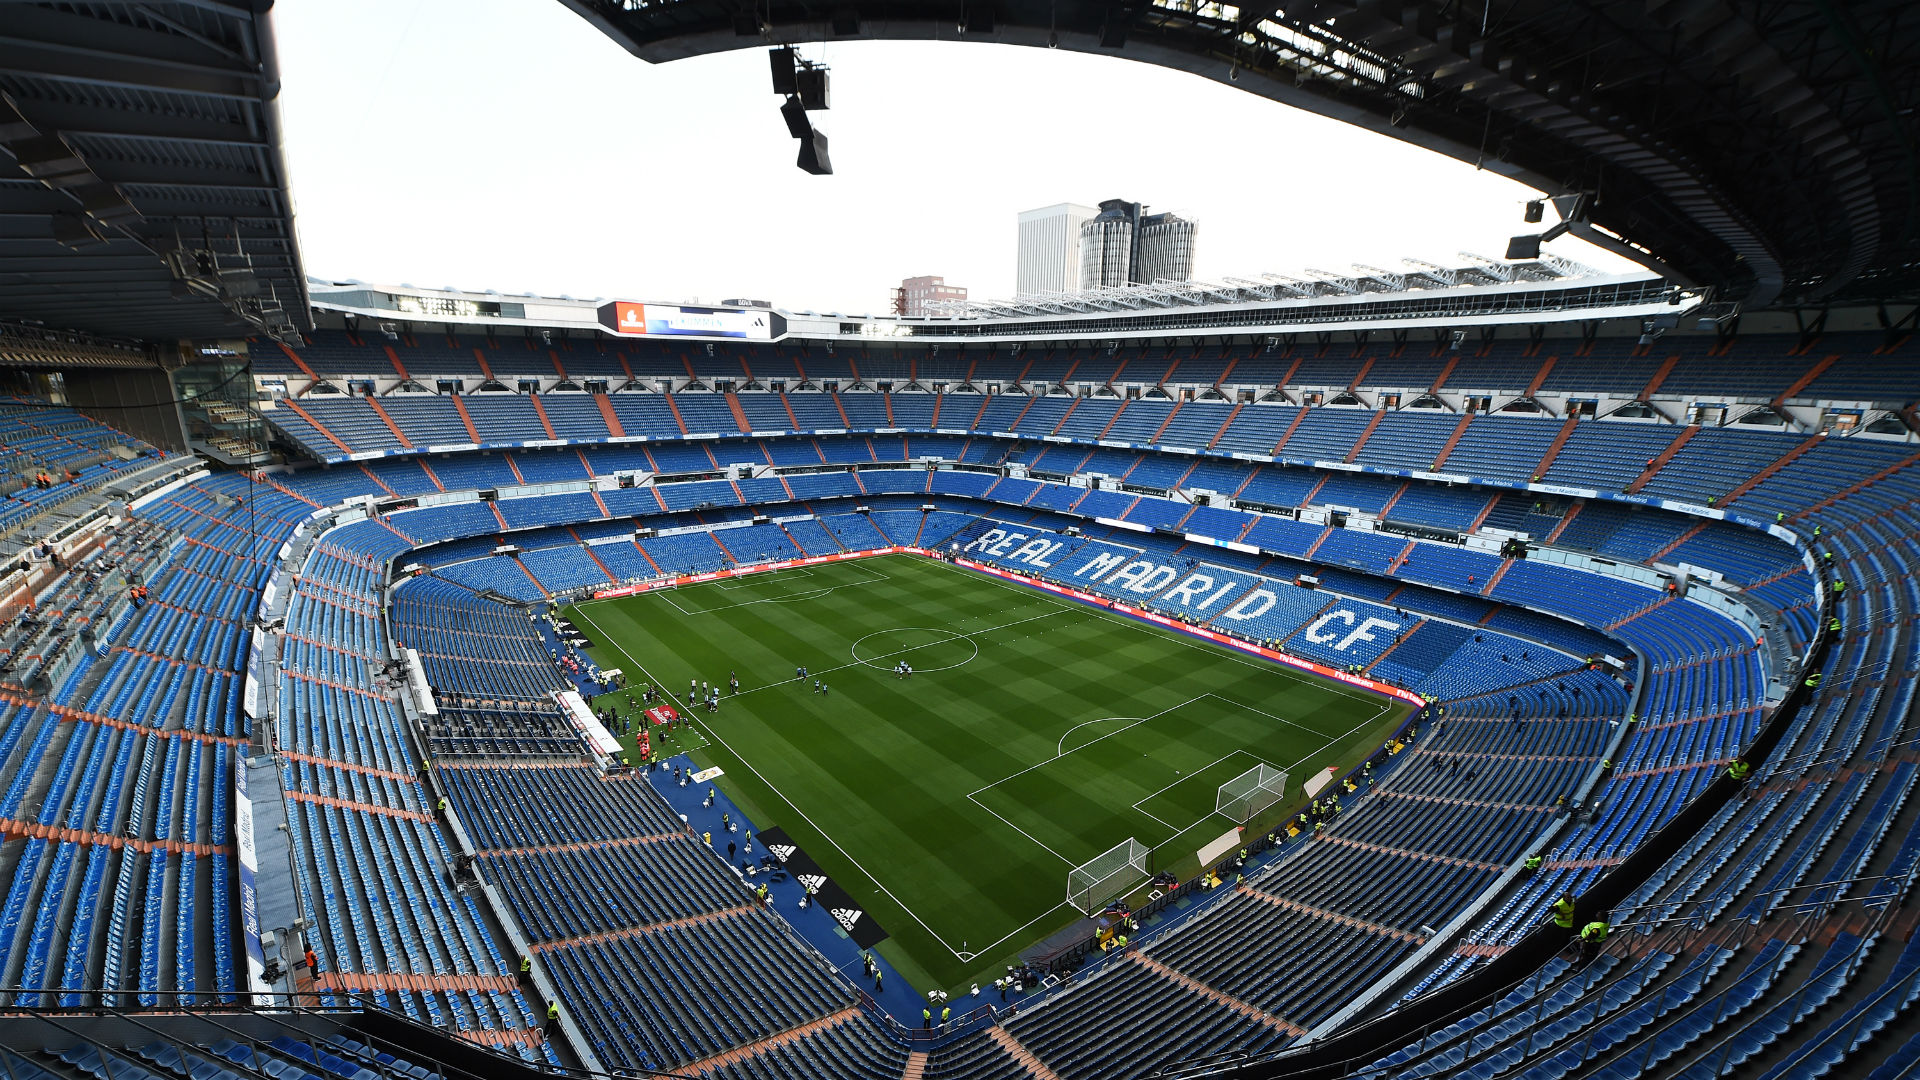 Coronavirus: Real Madrid's Bernabeu to store medical equipment